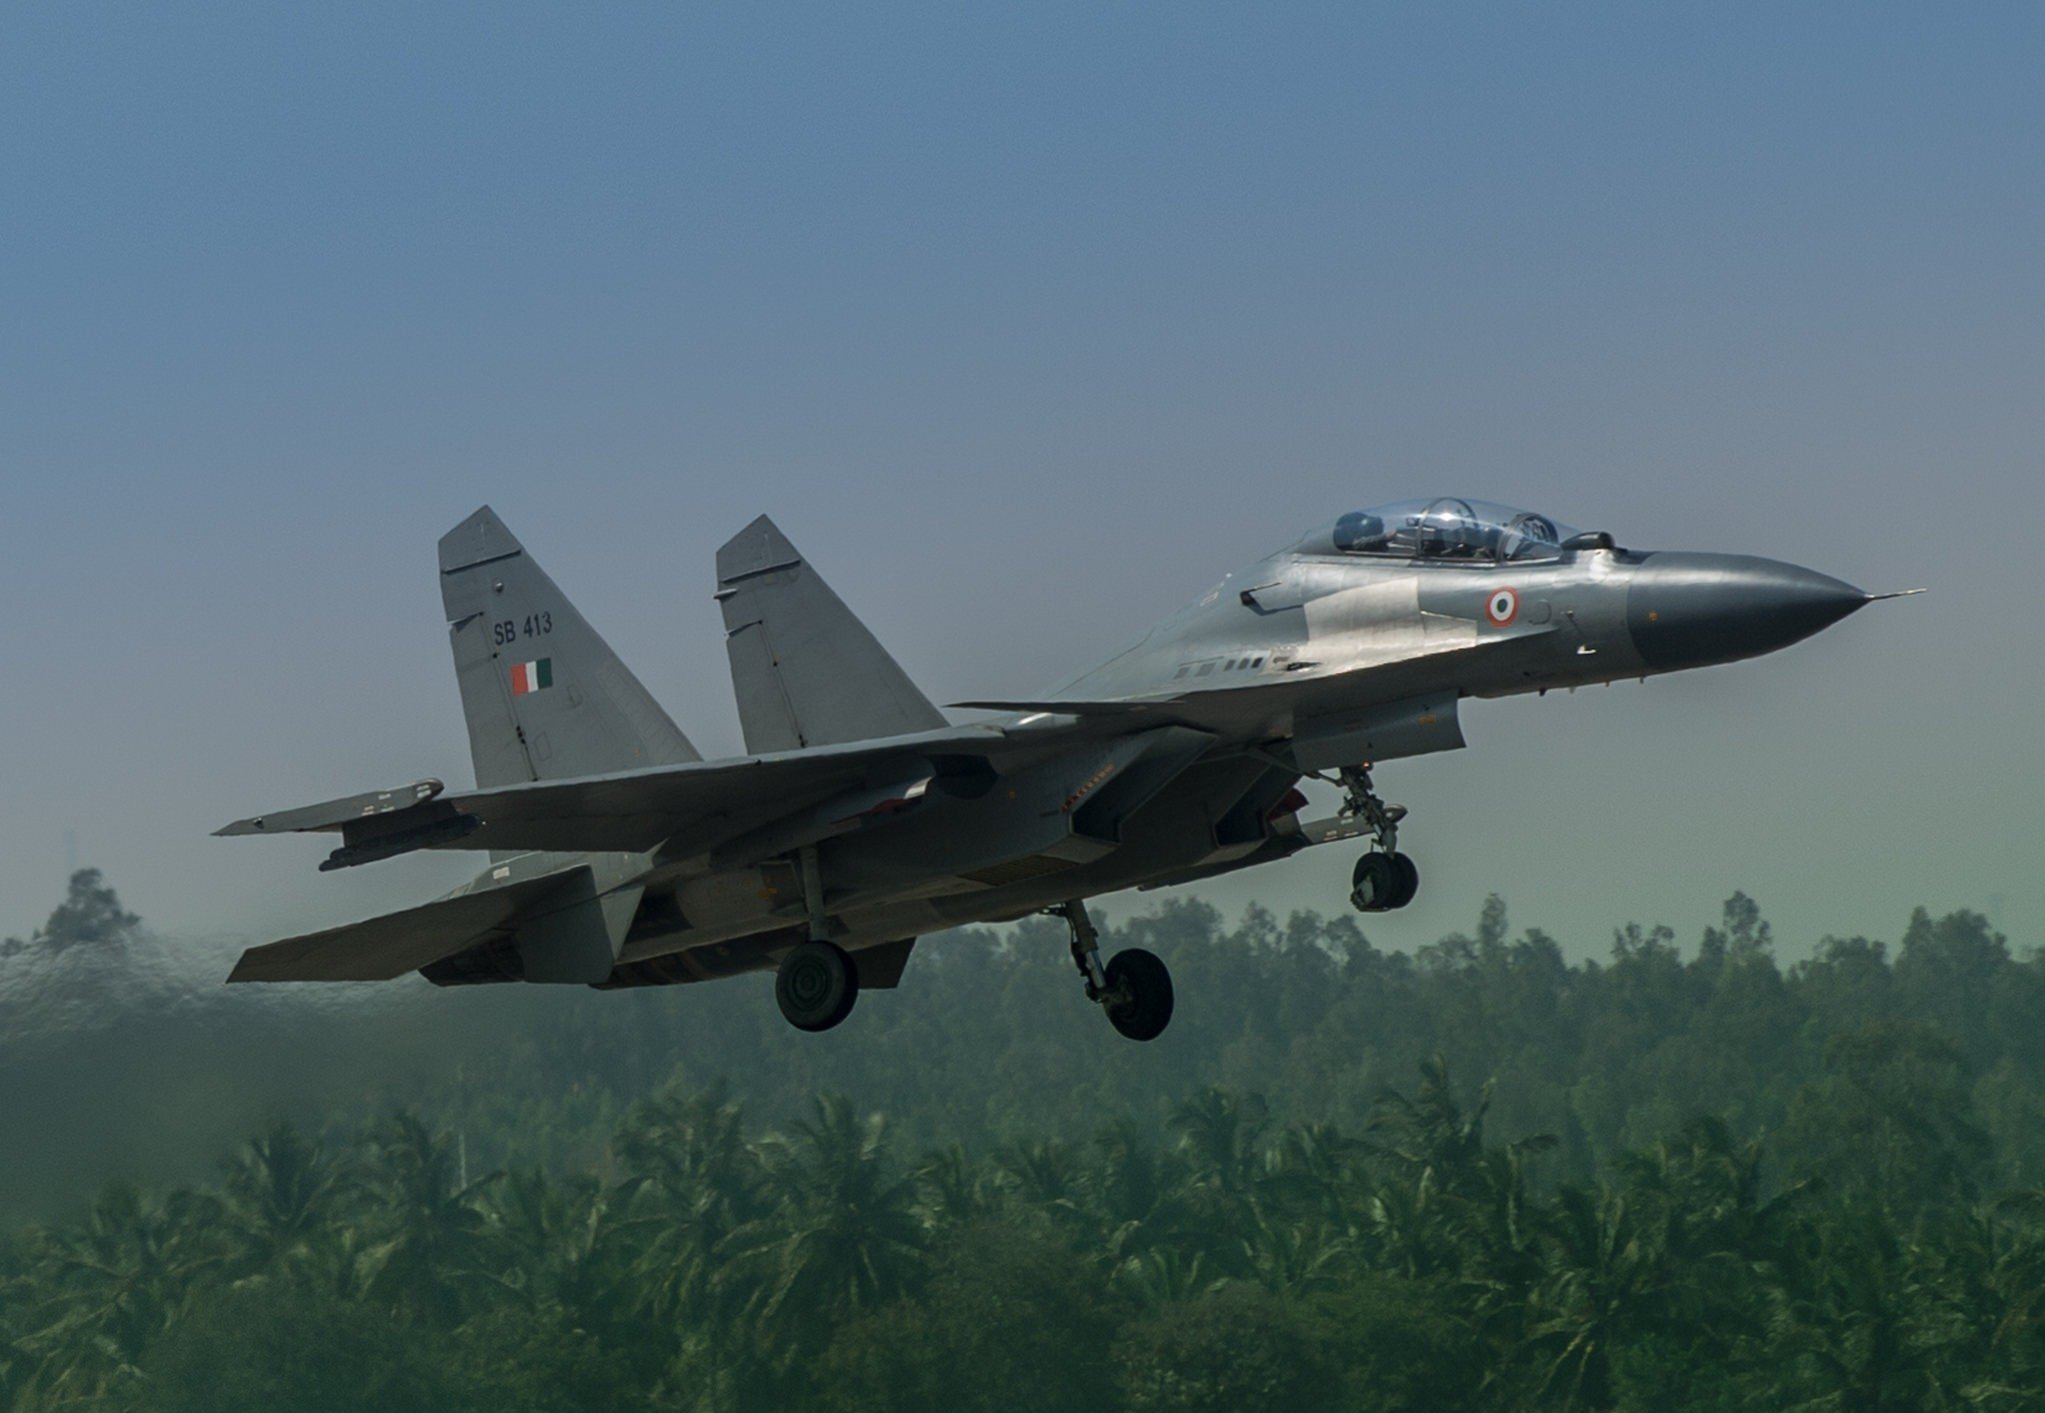 Russian Fighter Jet Sukhoi 30 MKI